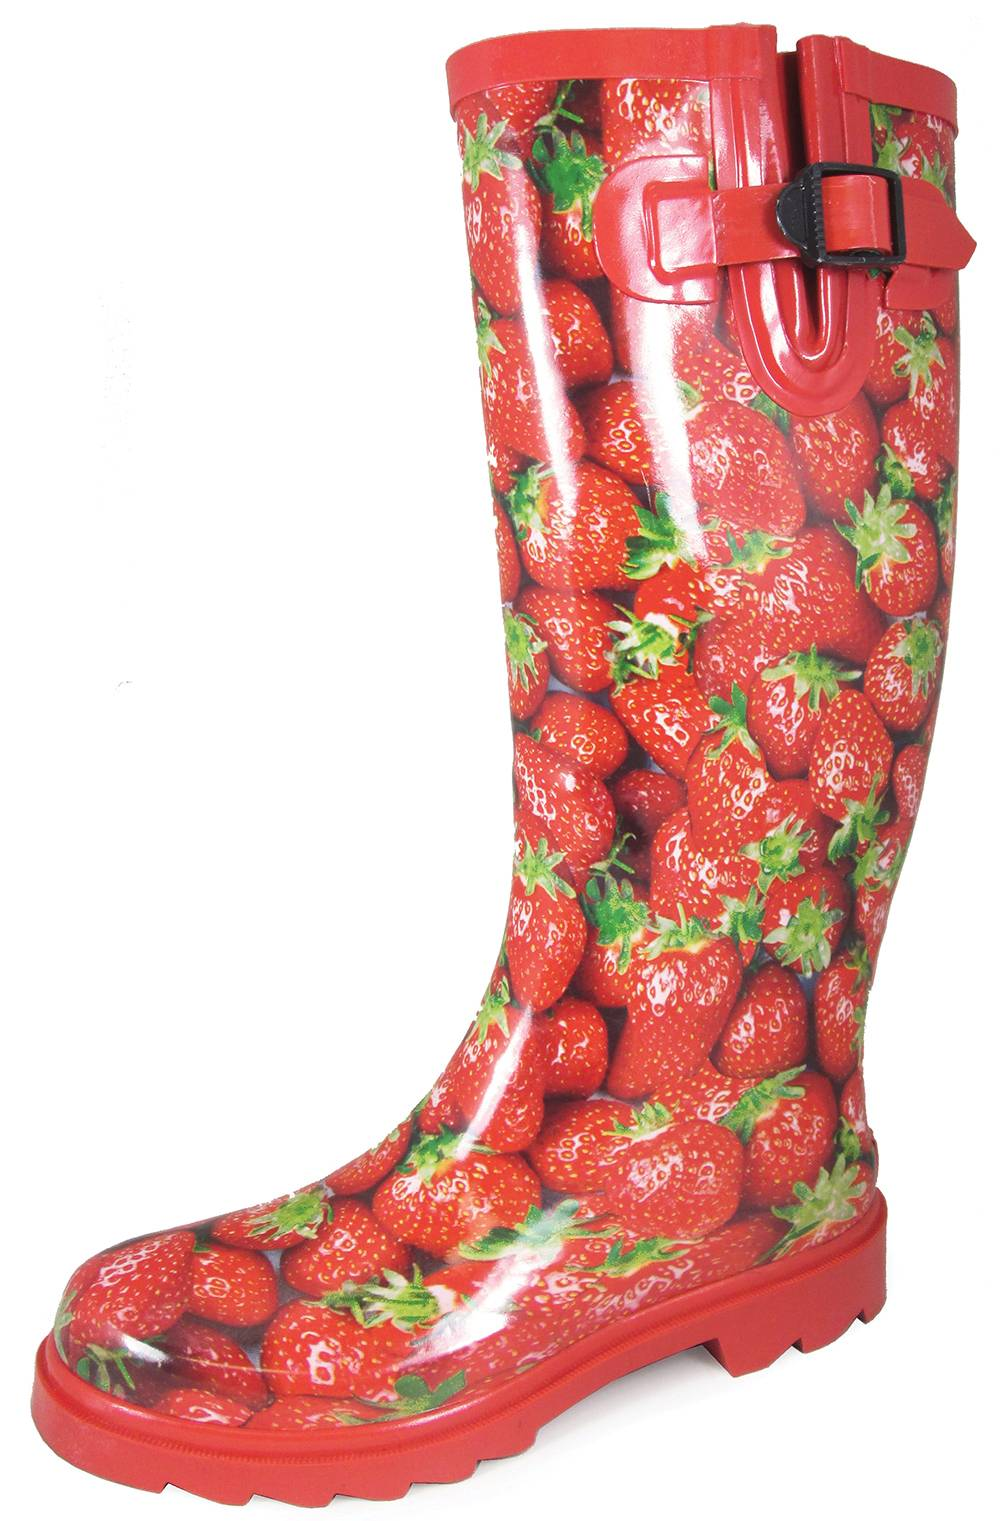 Smoky Mountain 15'' Rubber Boots - Ladies - Strawberry Print